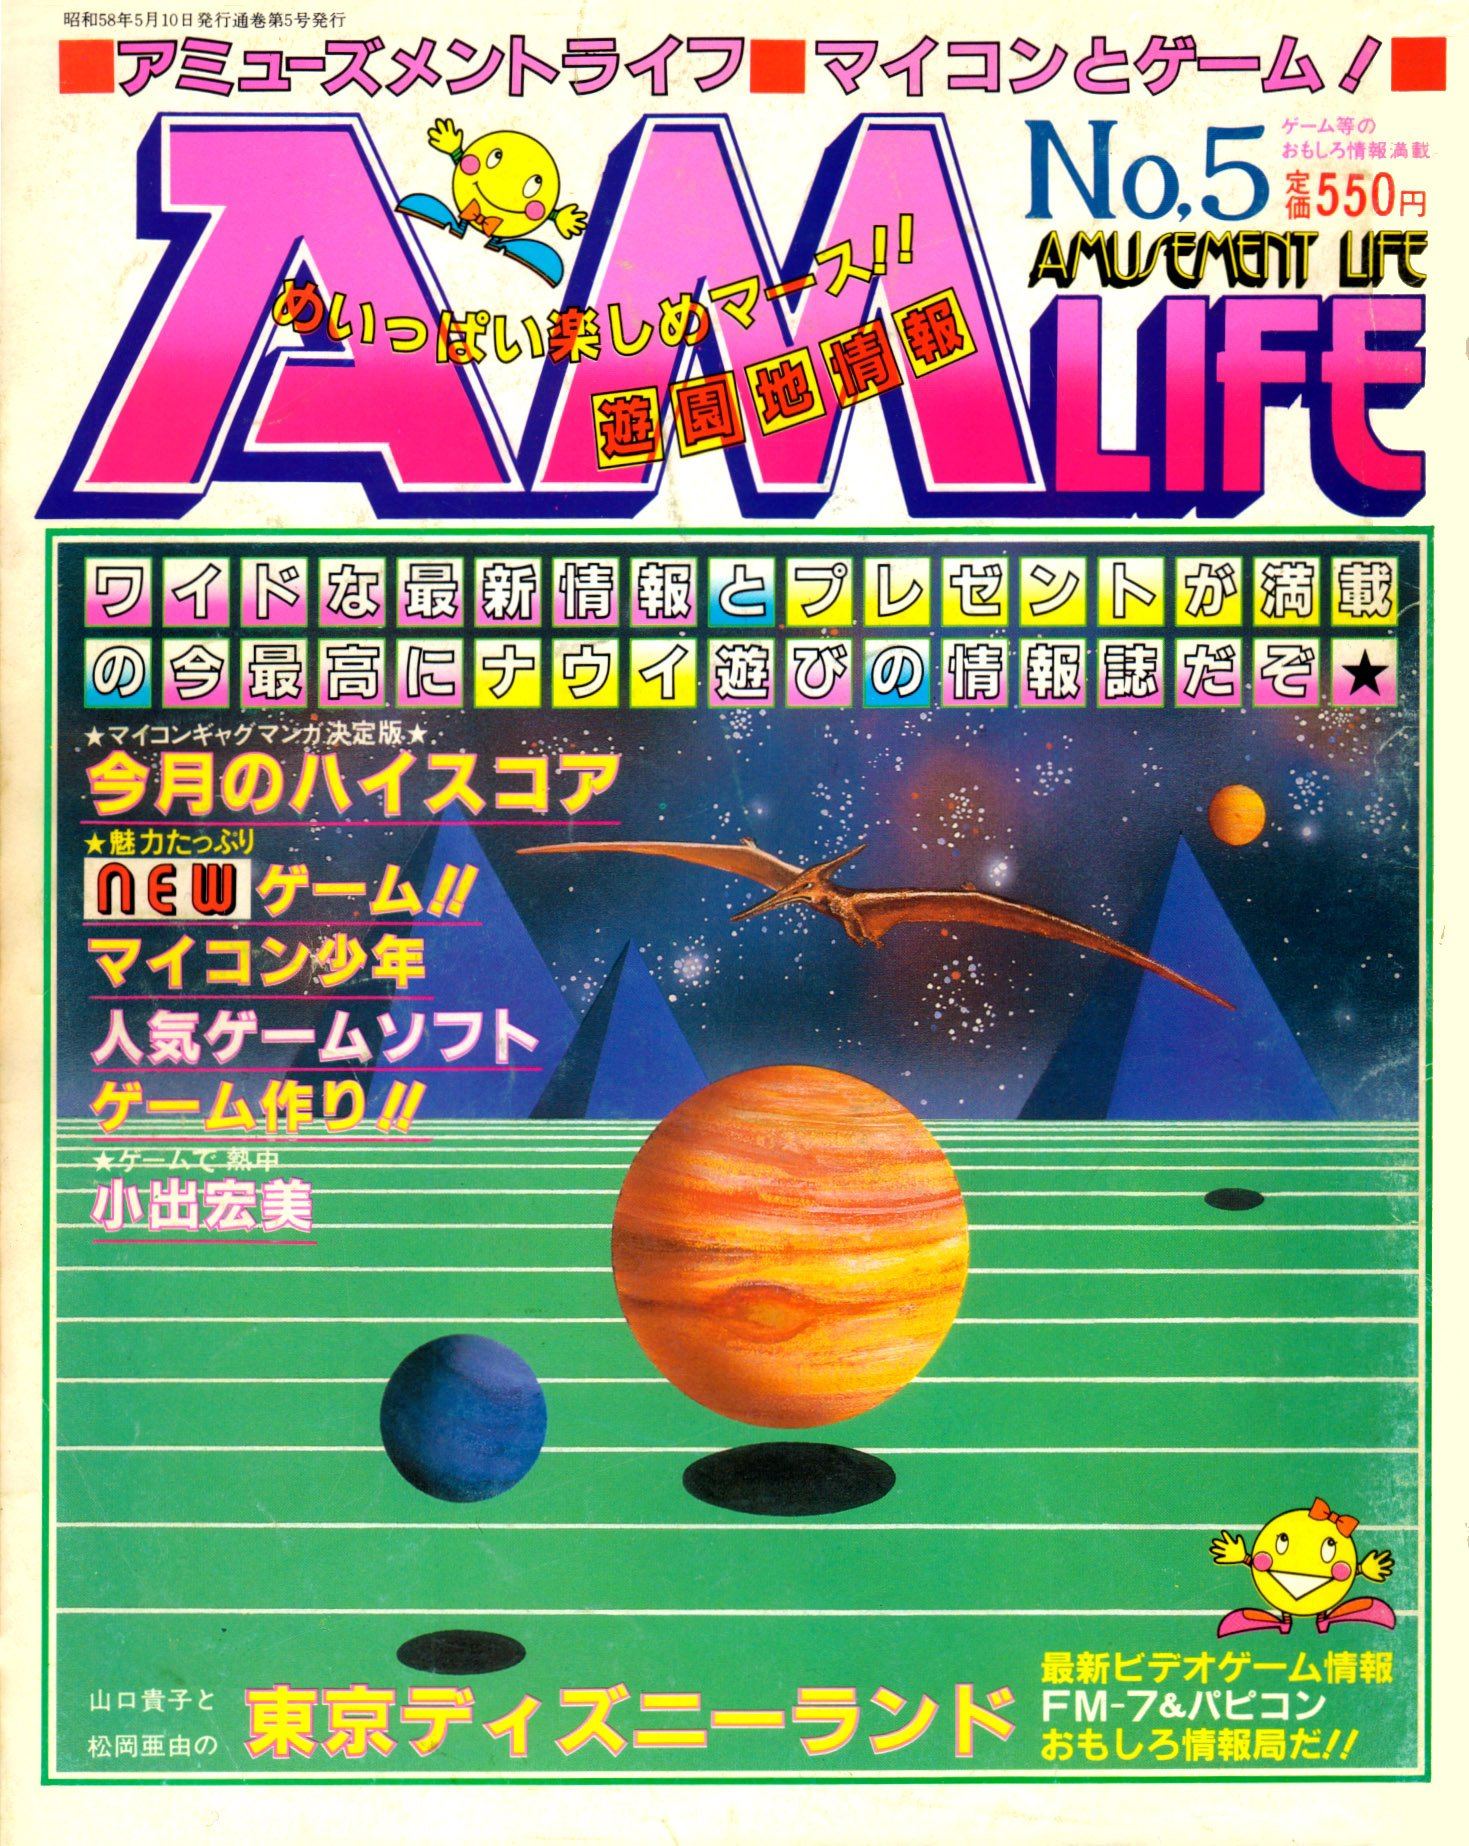 Amusement Life Issue 05 (May 1983)